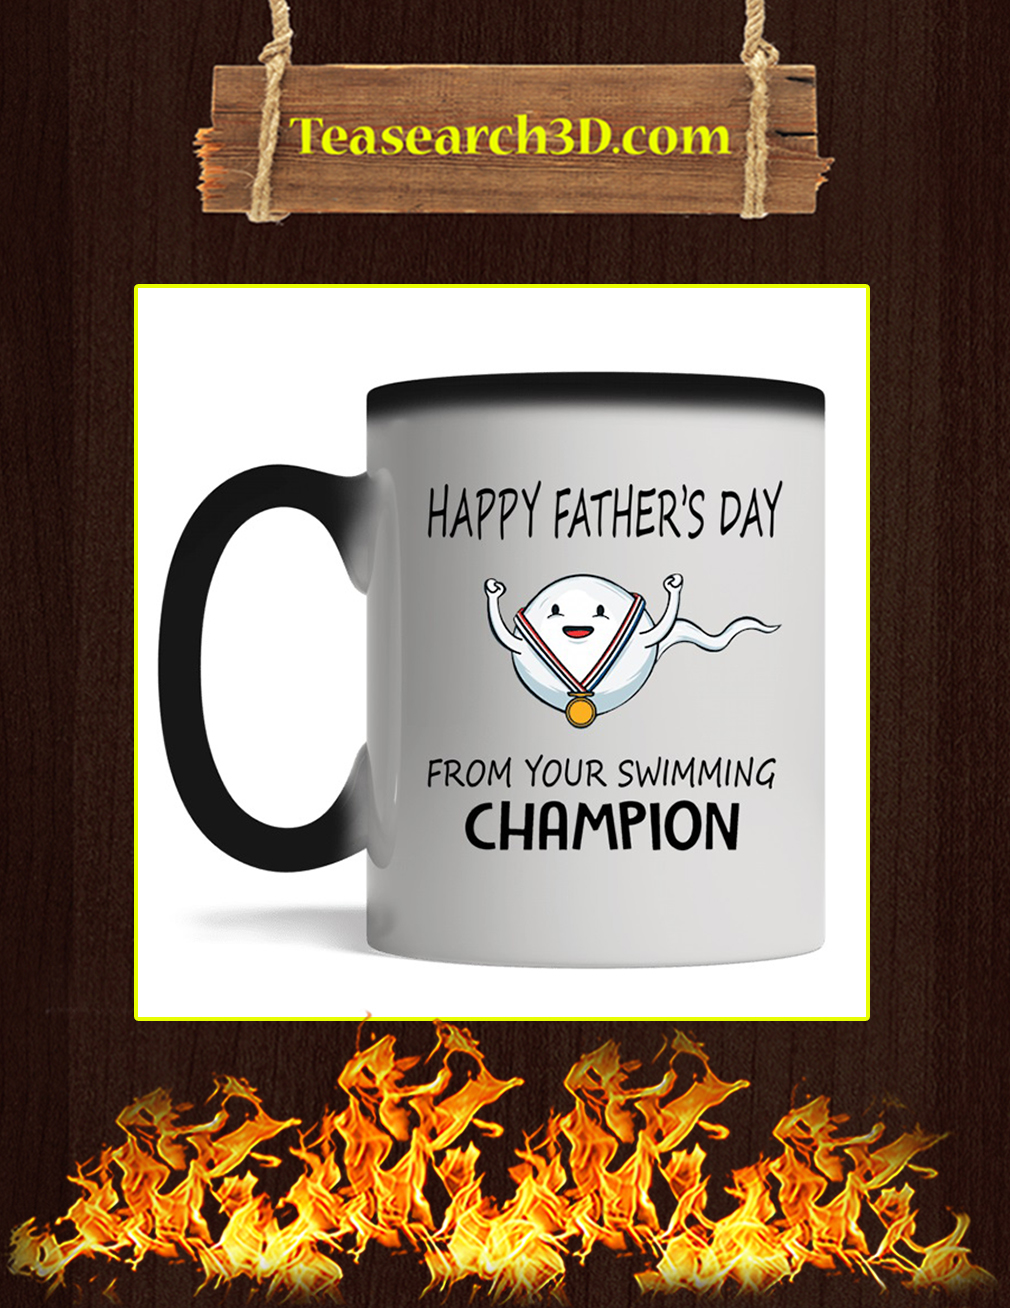 Happy father's day from your swimming champion mug magic